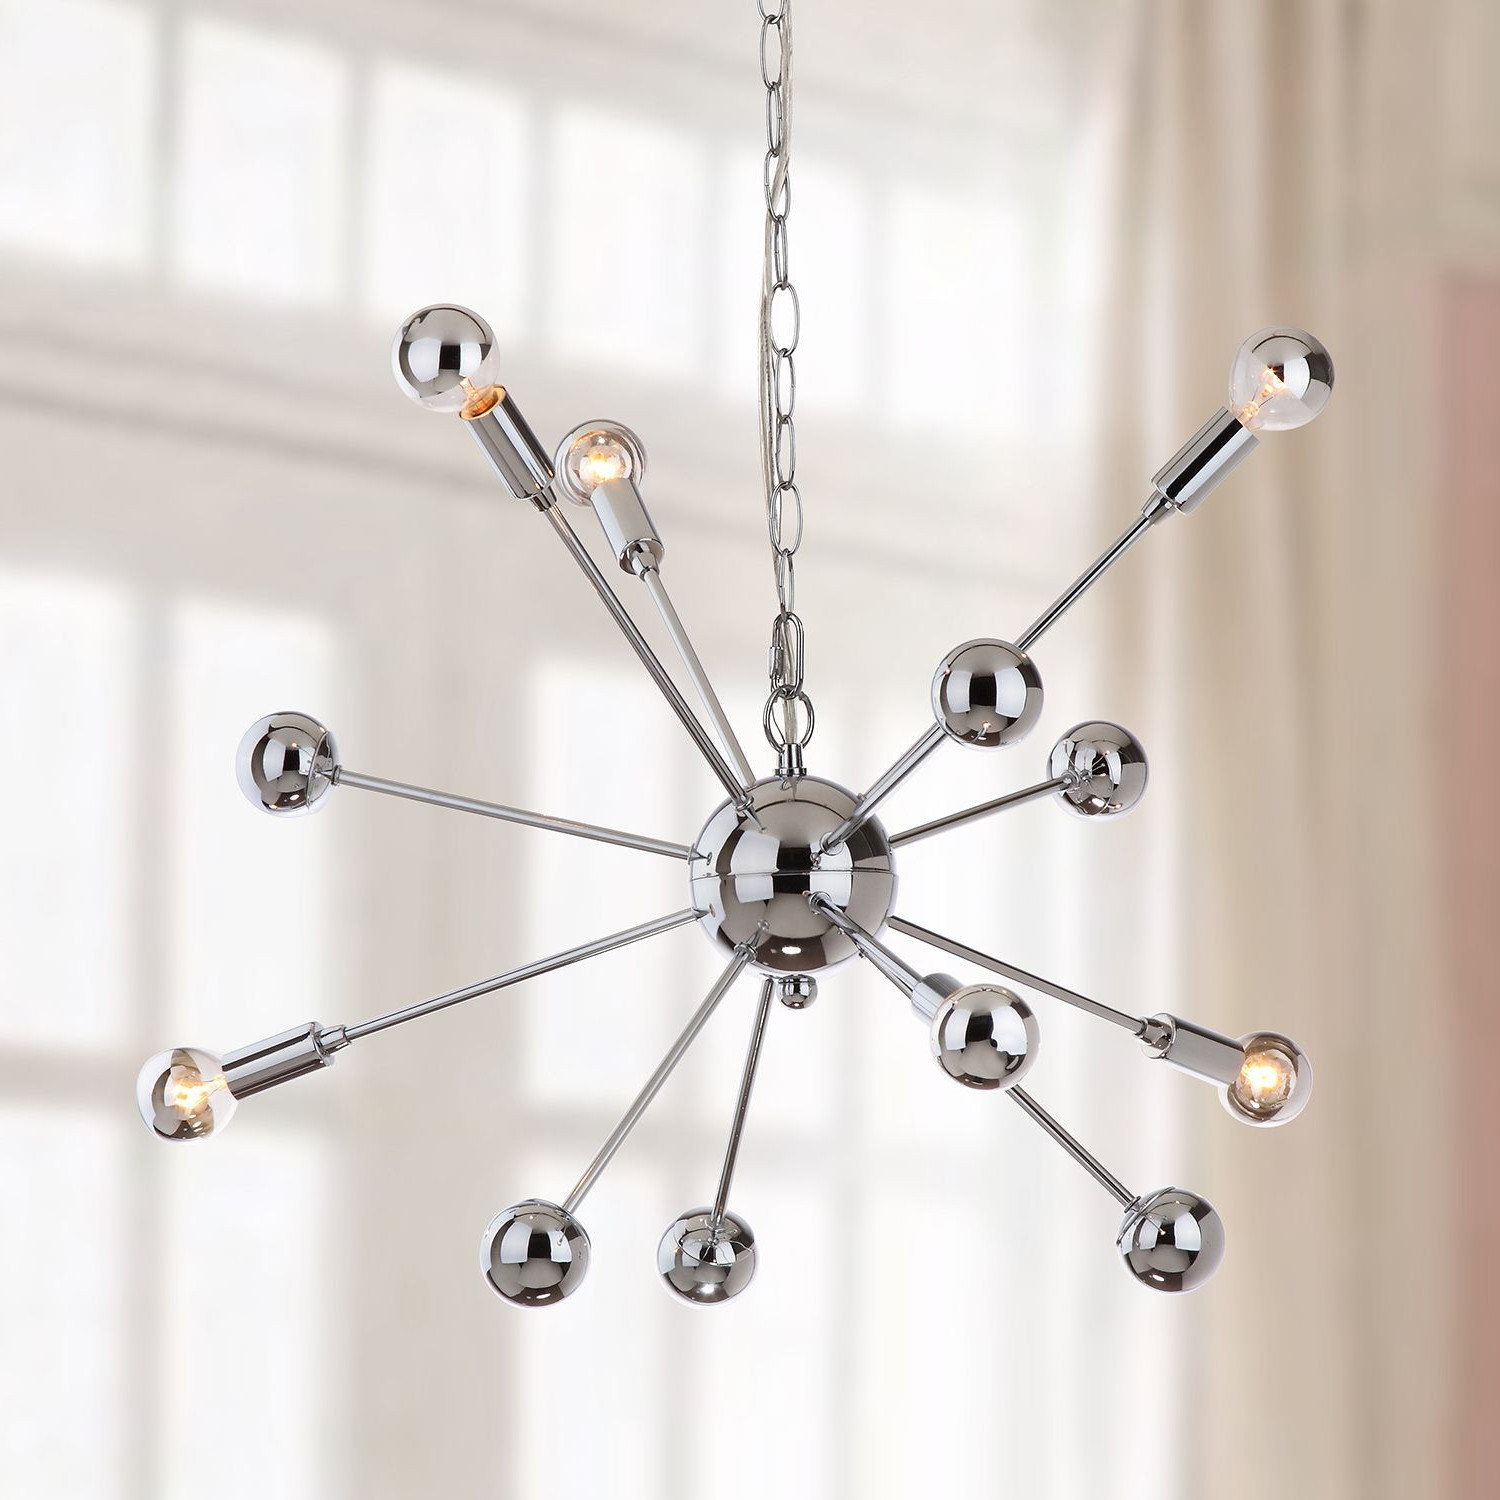 6 Light Starburst Sputnik Pendant Light (View 3 of 25)